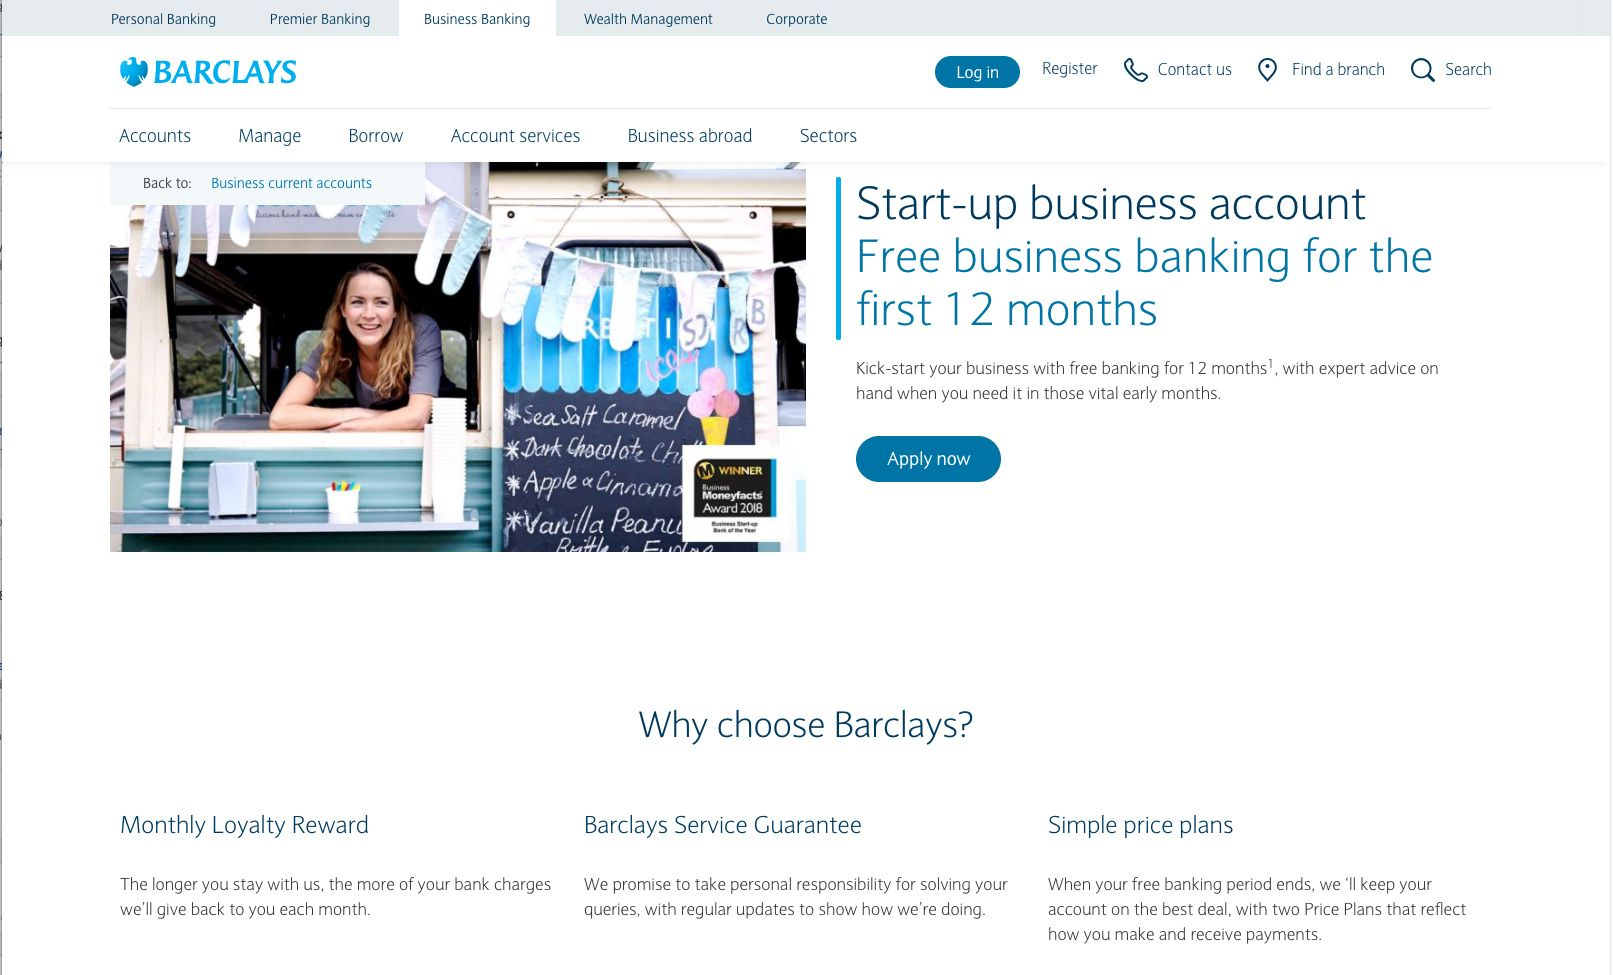 Barclays featuring their BMFAwards win online. Business